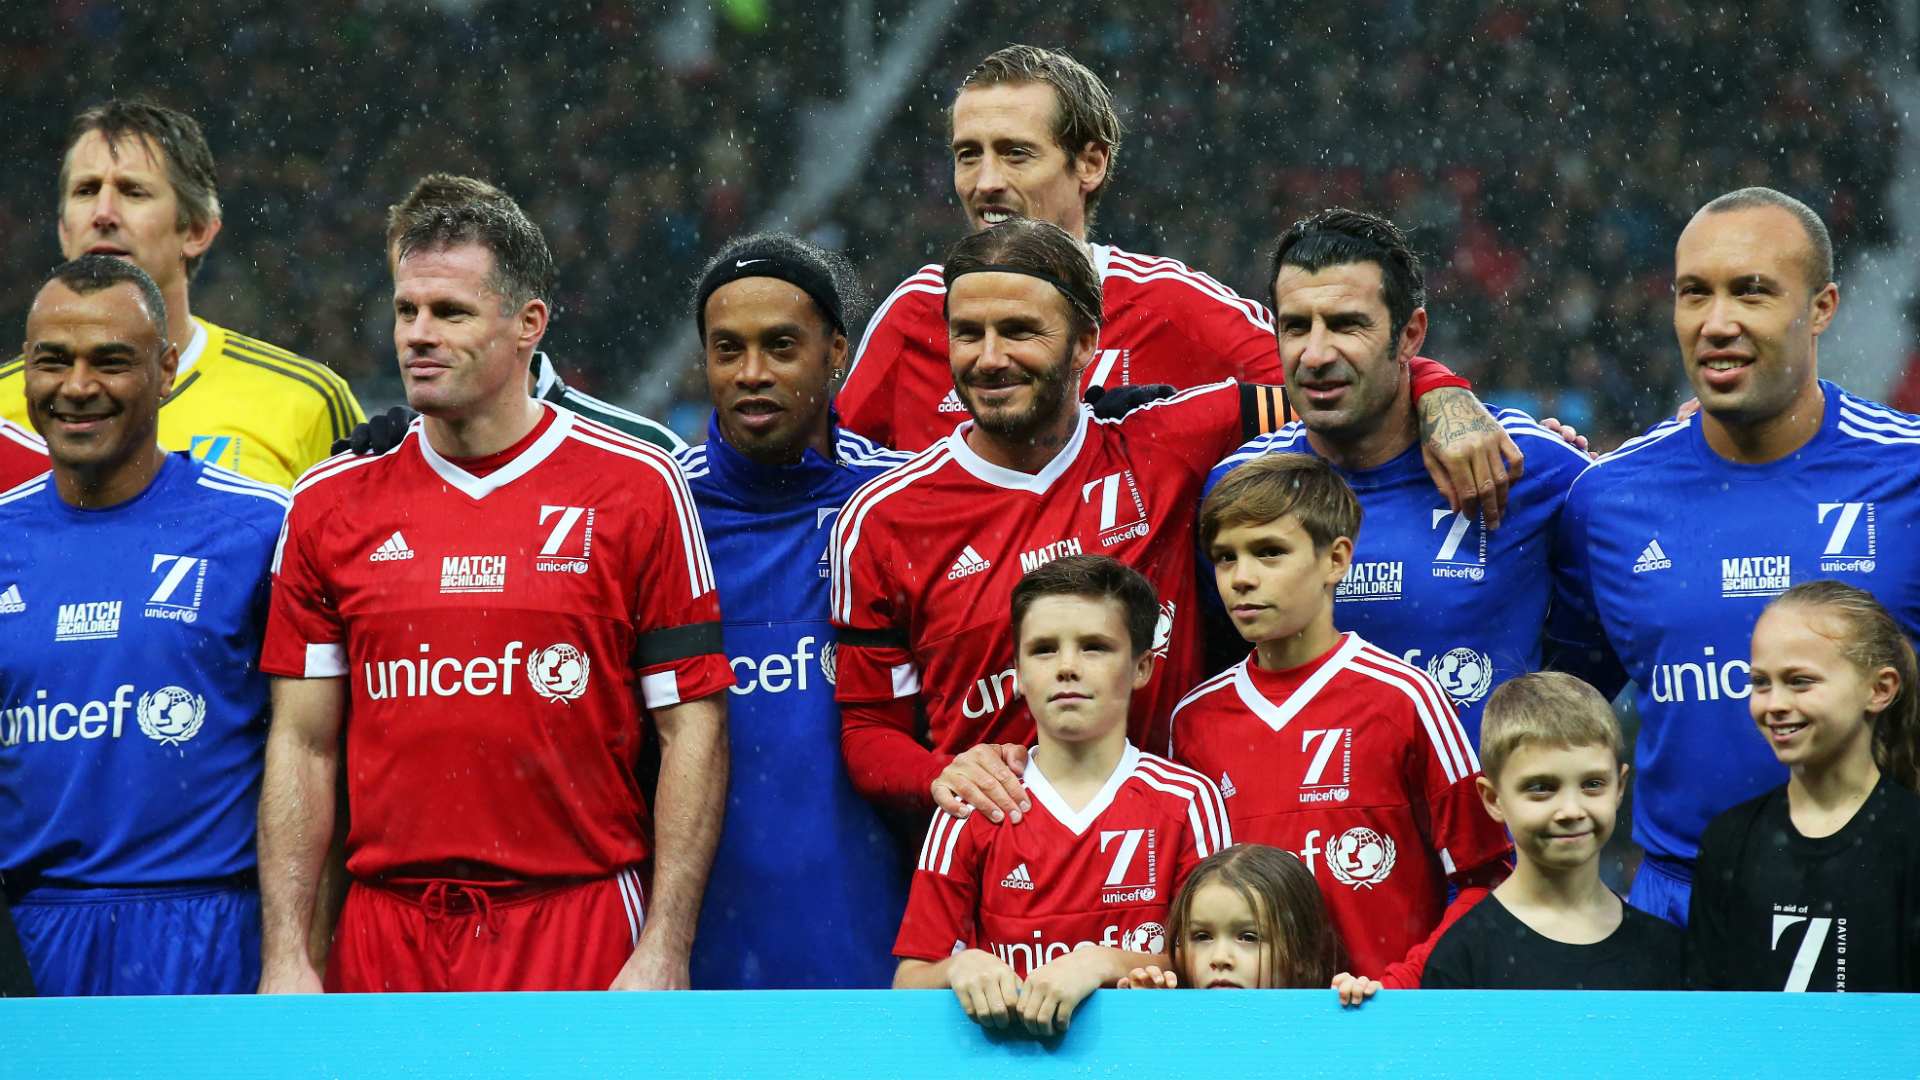 WATCH: DAVID BECKHAM & RONALDINHO'S HIGHLIGHTS FROM UNICEF CHARITY MATCH!